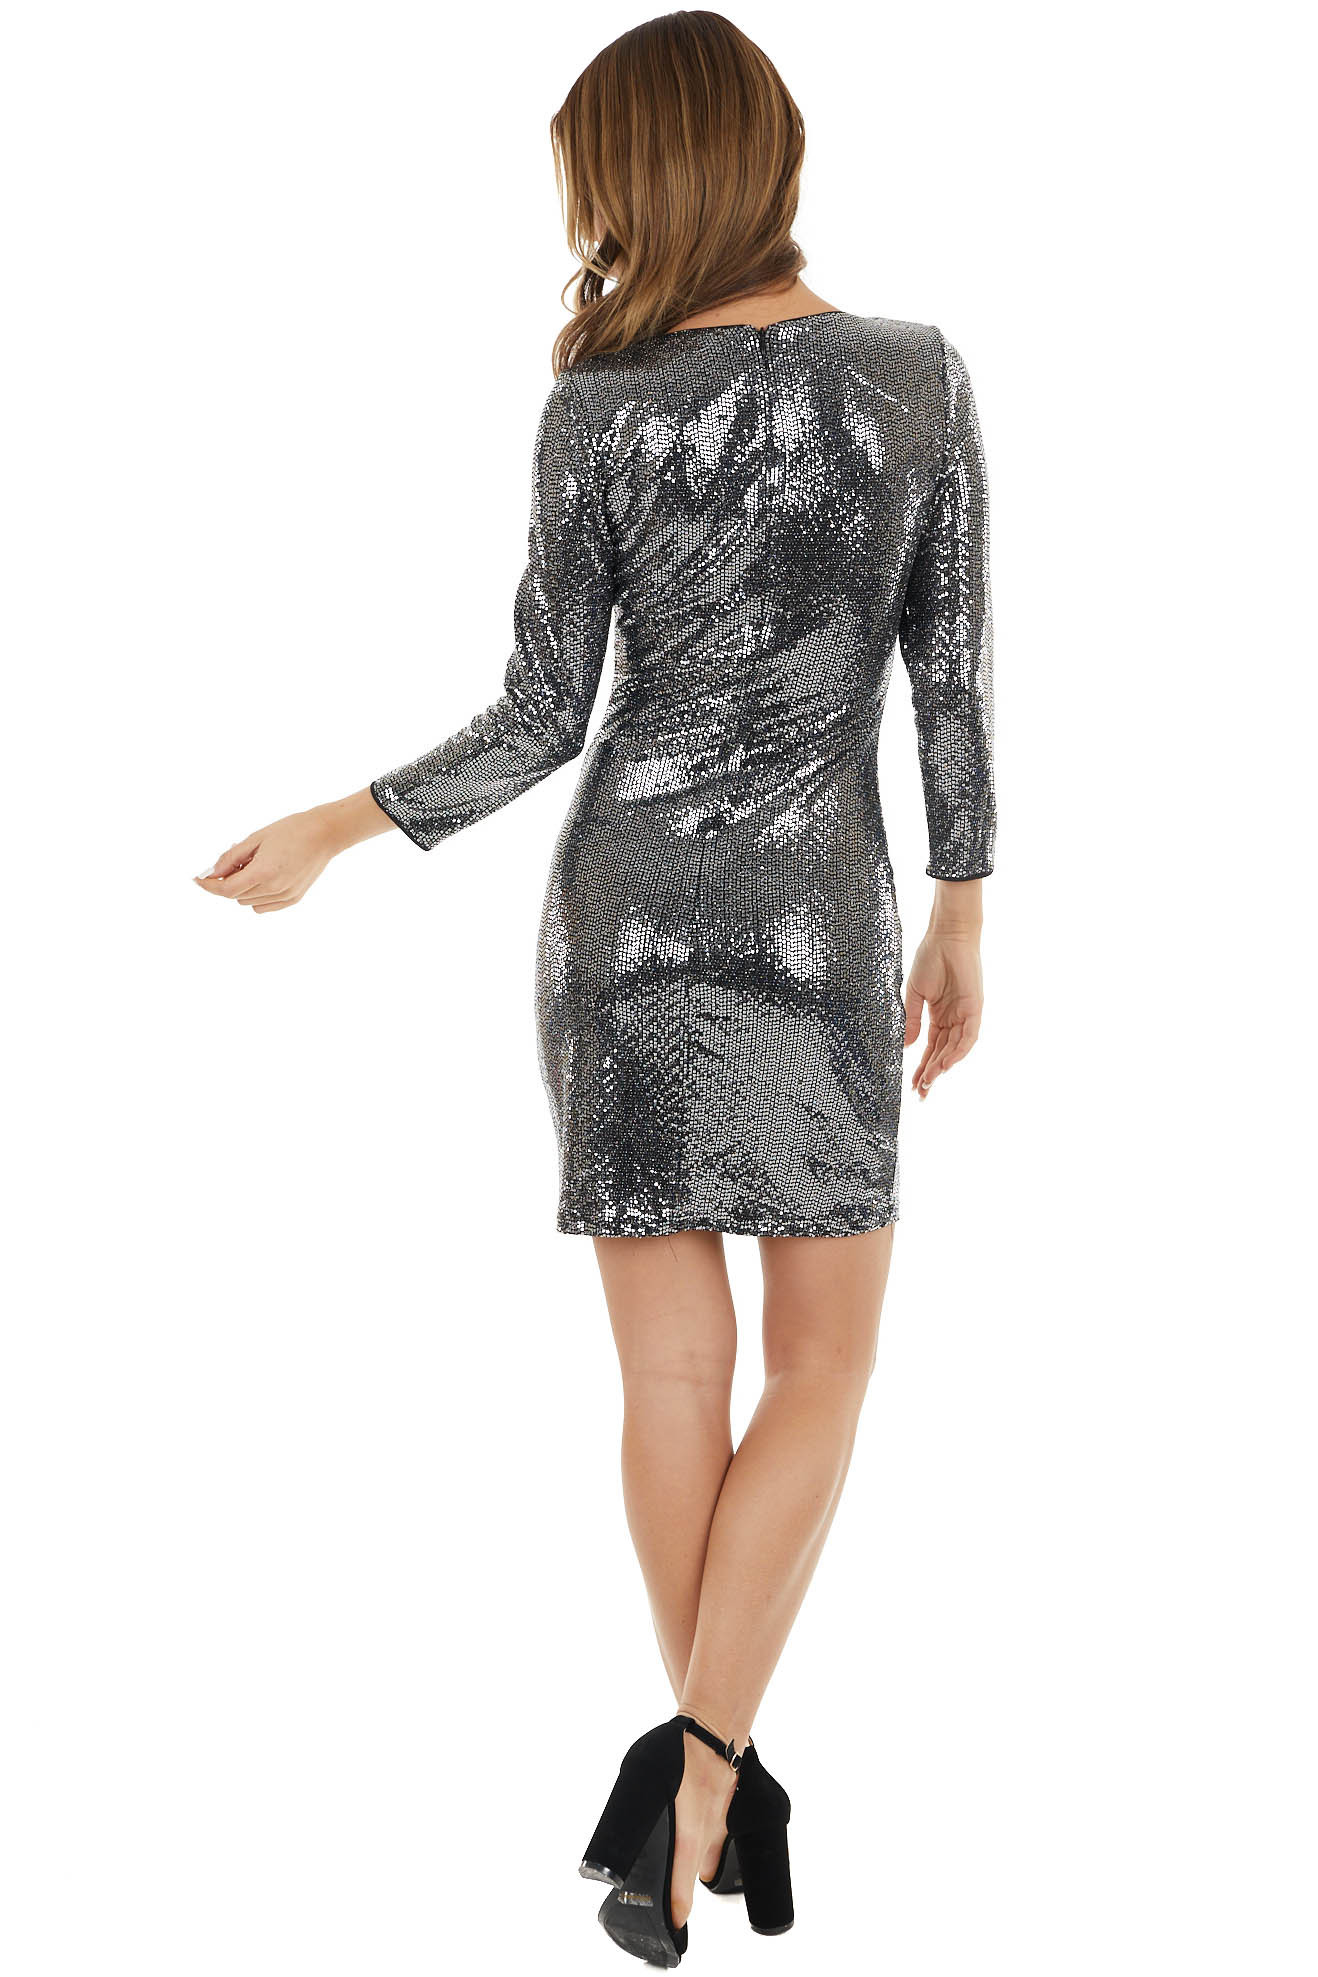 Silver Metallic Bodycon Short Dress with 3/4 Length Sleeves